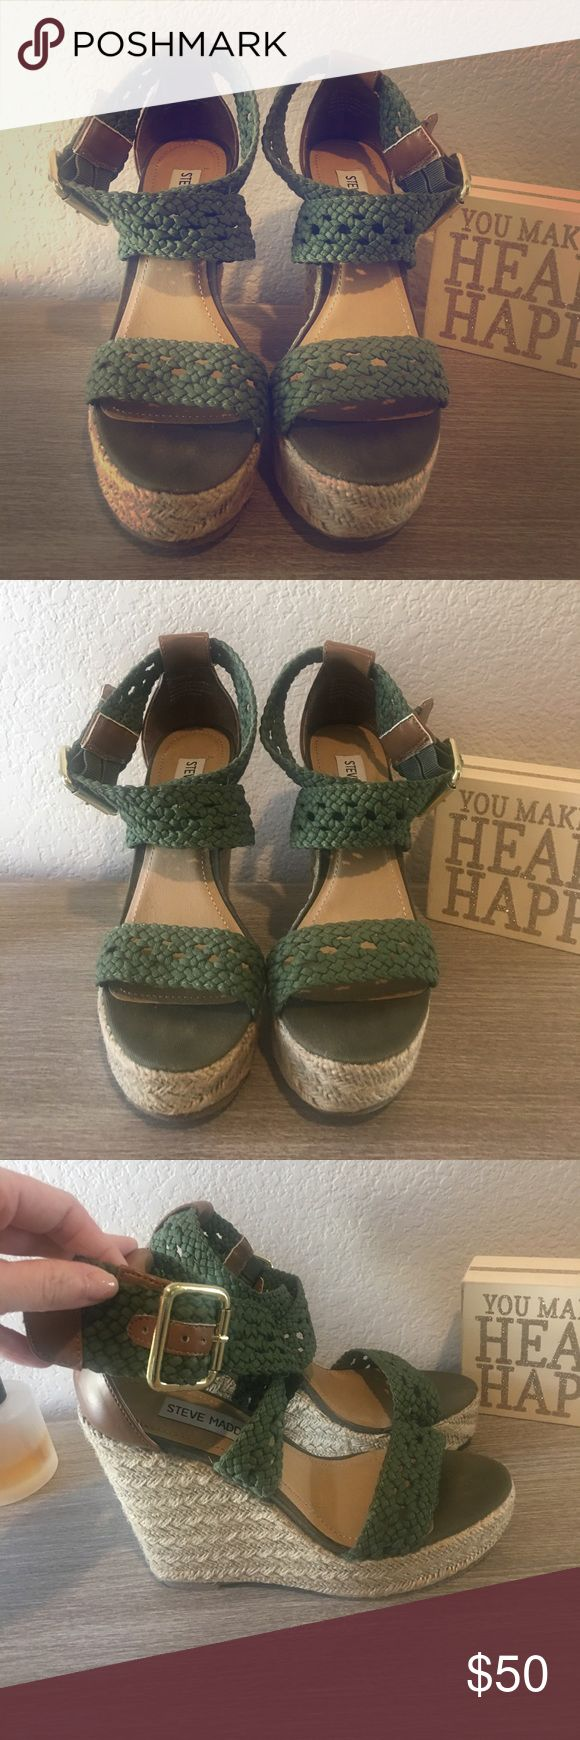 NWOT. NIB Steve Madden Wedges Price Firm. Fabulous Steve Madden Magestee Khaki Wedges.  Never worn. Have been stored in and will ship in box Steve Madden Shoes Wedges